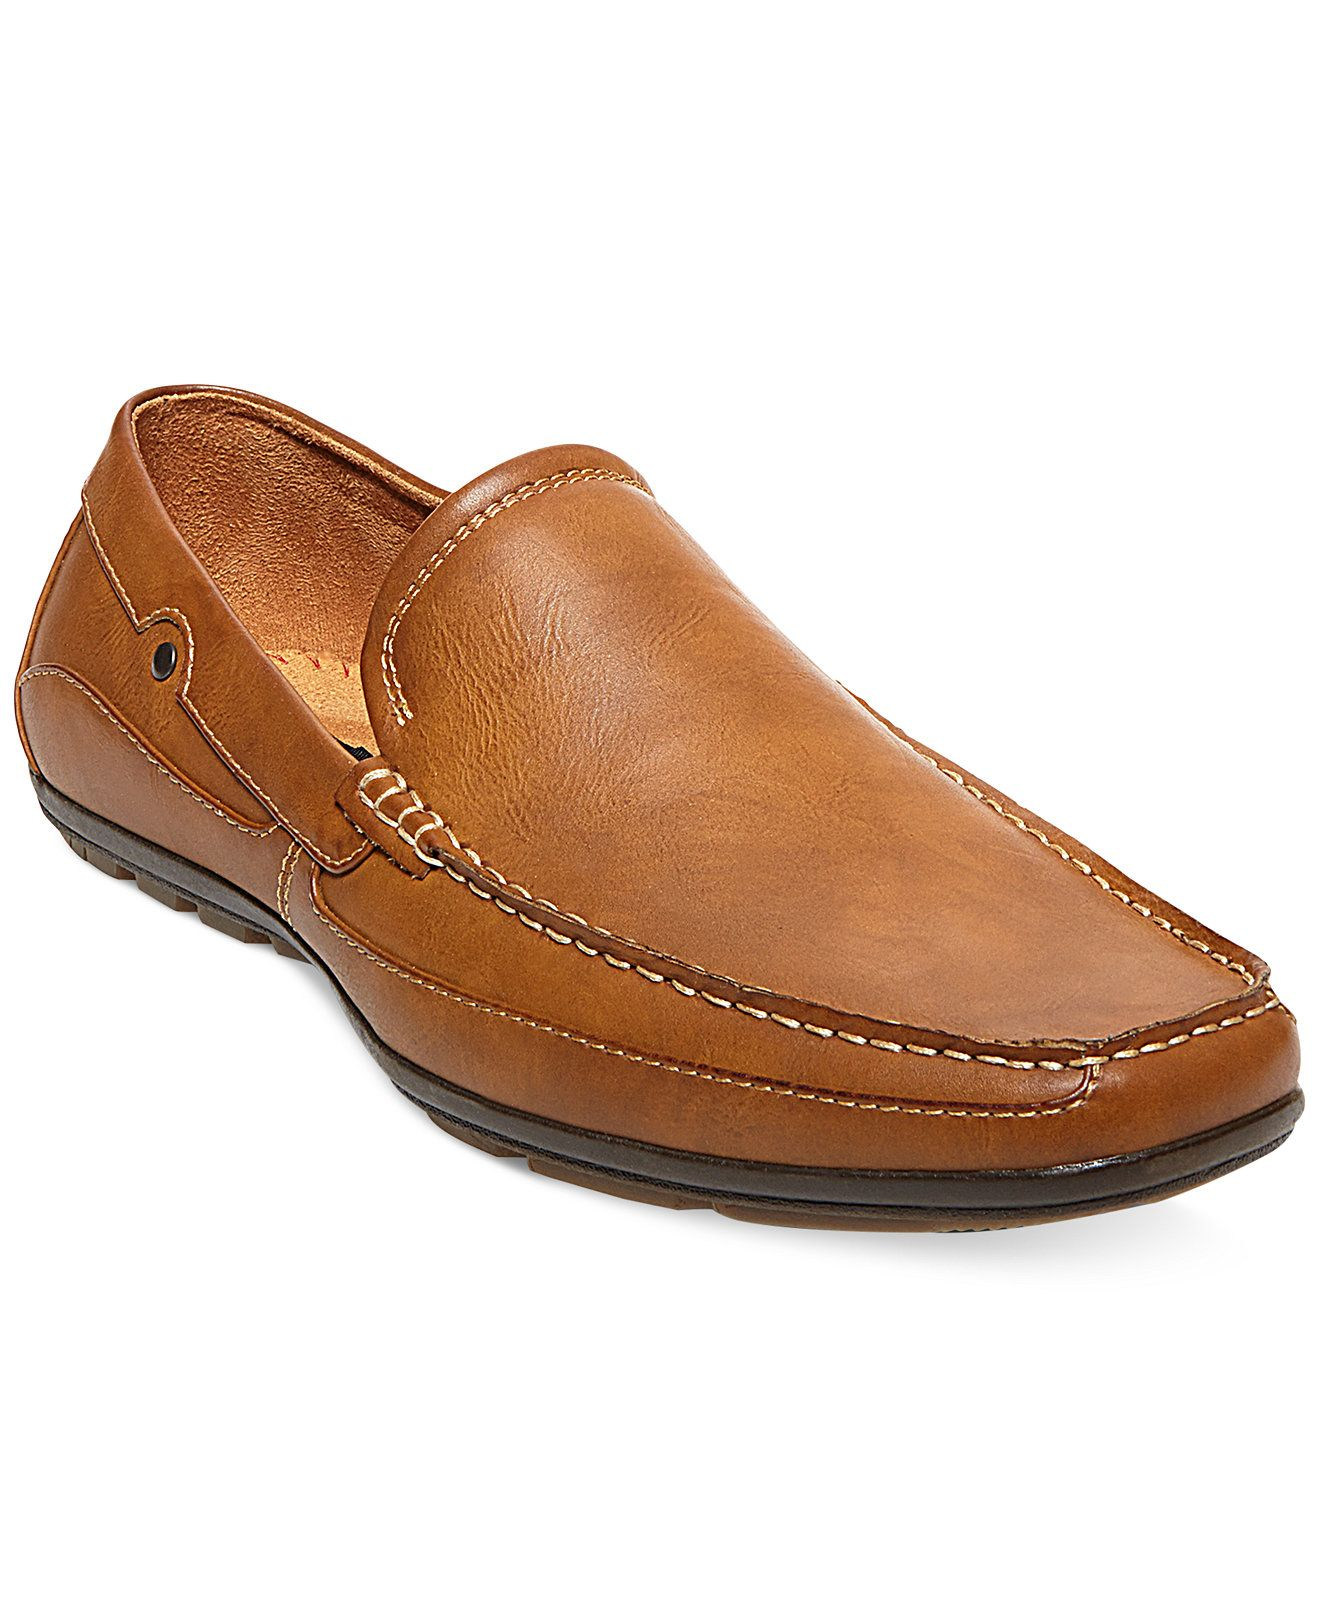 f12156c6a48 Madden Need Driving Shoes - Loafers & Slip-Ons - Men - Macy's ...